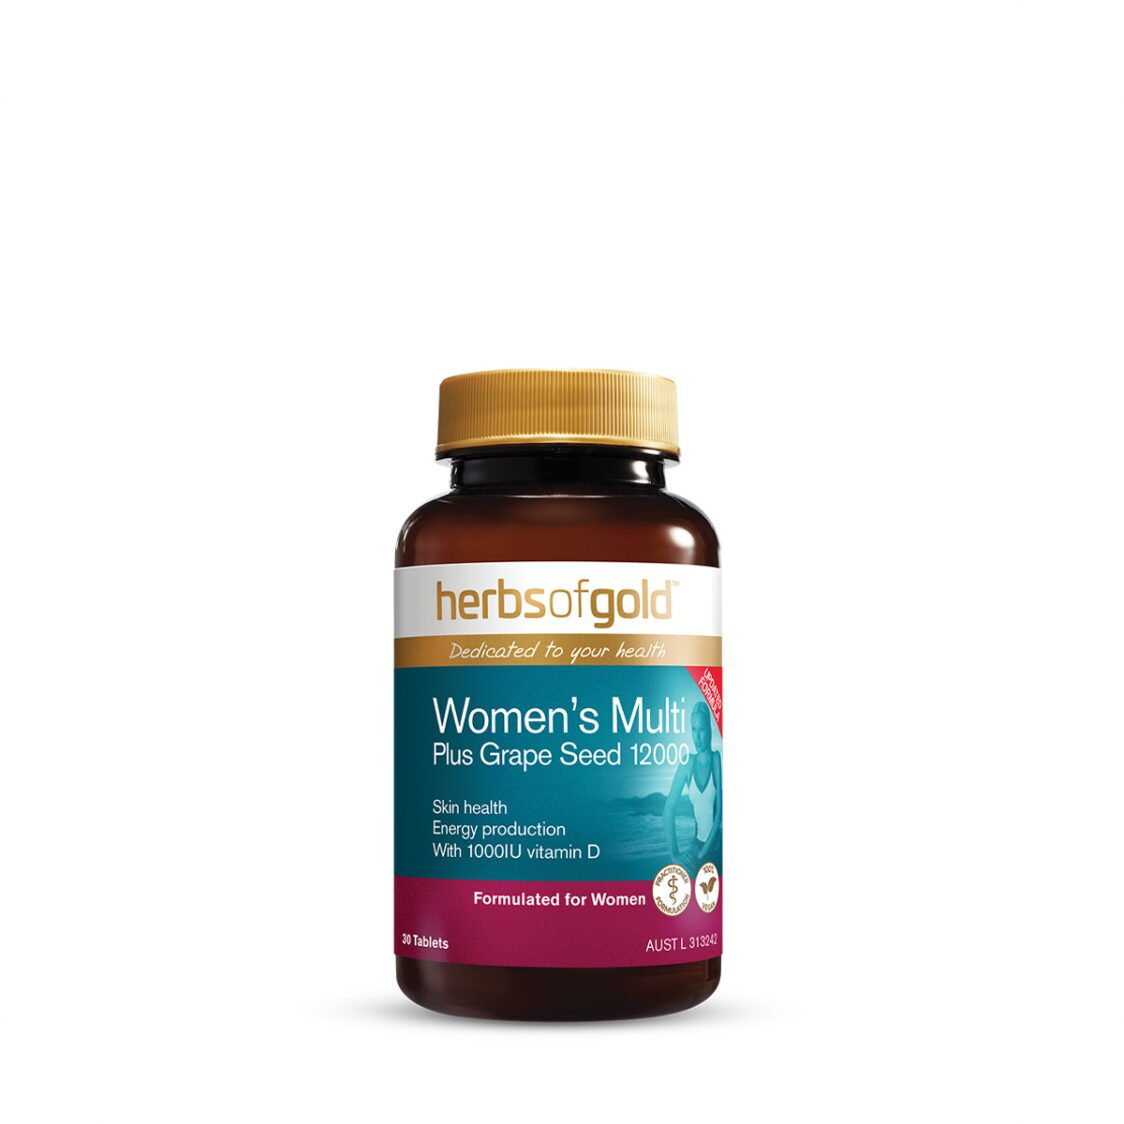 Herbs of Gold Womens Multi Plus Grapeseed 12000 30 Tablets